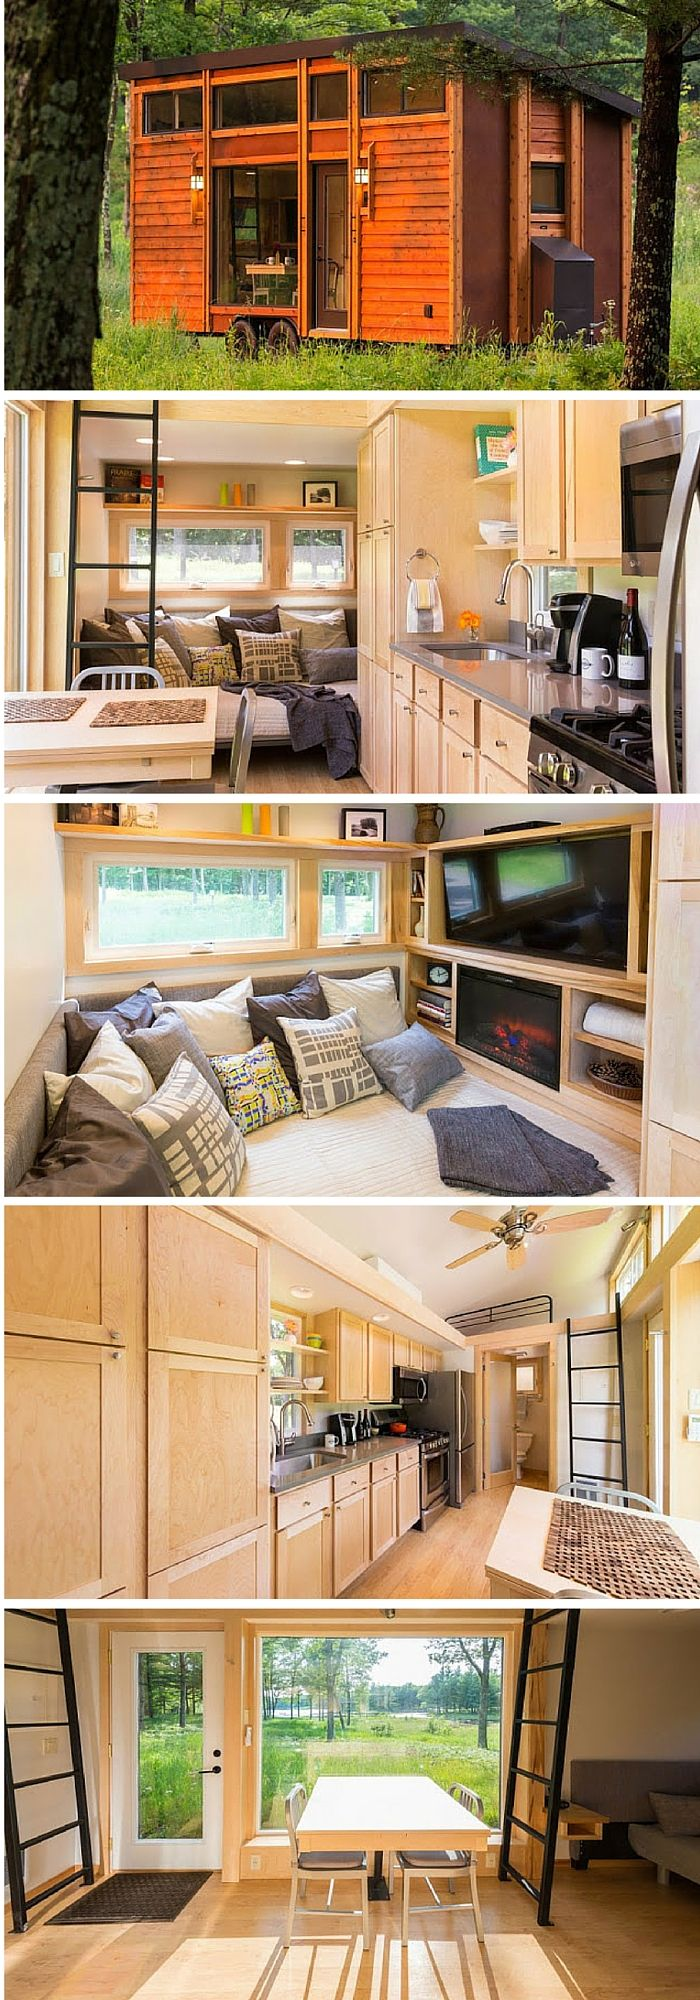 best images about tiny hme on pinterest modern tiny house